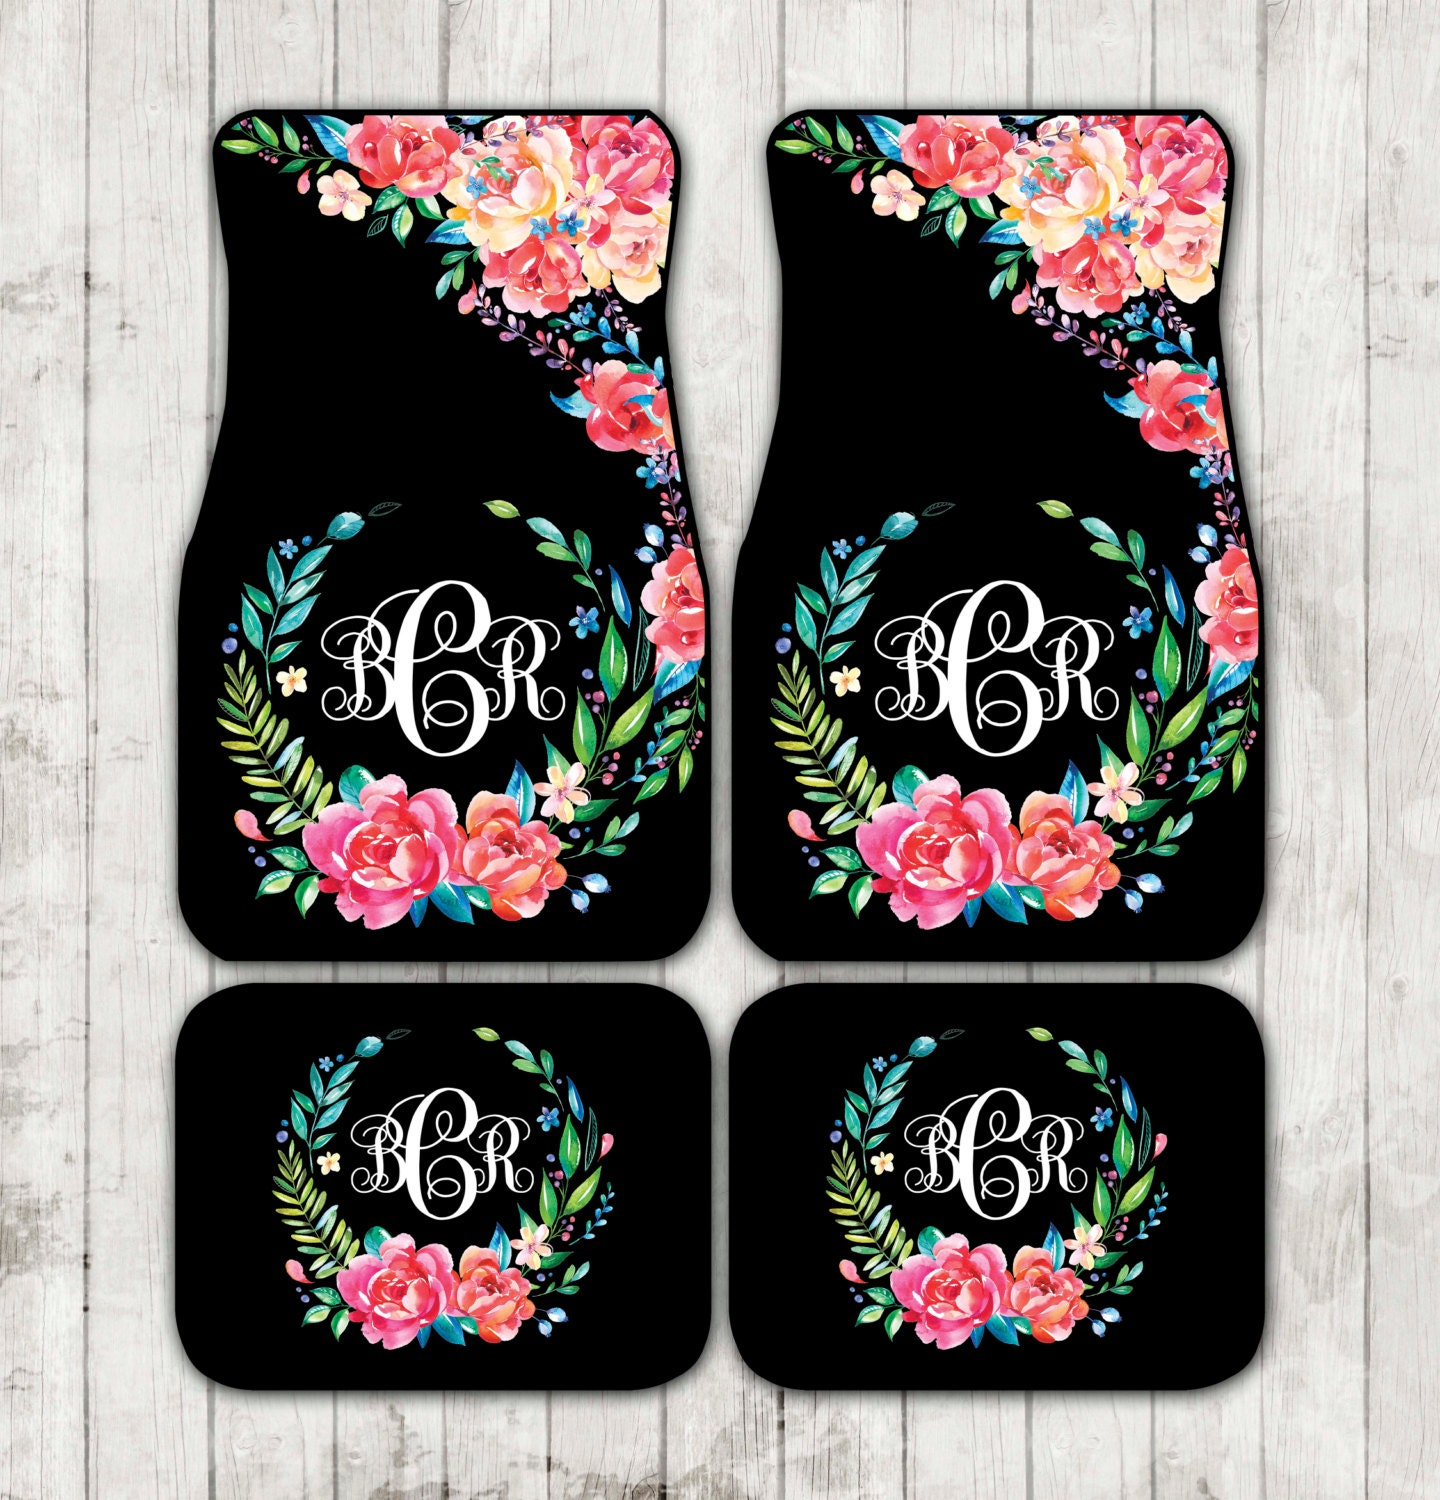 Floor mats kenya - Floral Monogrammed Car Mats Classy Black Monogram Carmats Car Floor Mats Custom Car Accessories For Her Car Decor Cute Car Accessories